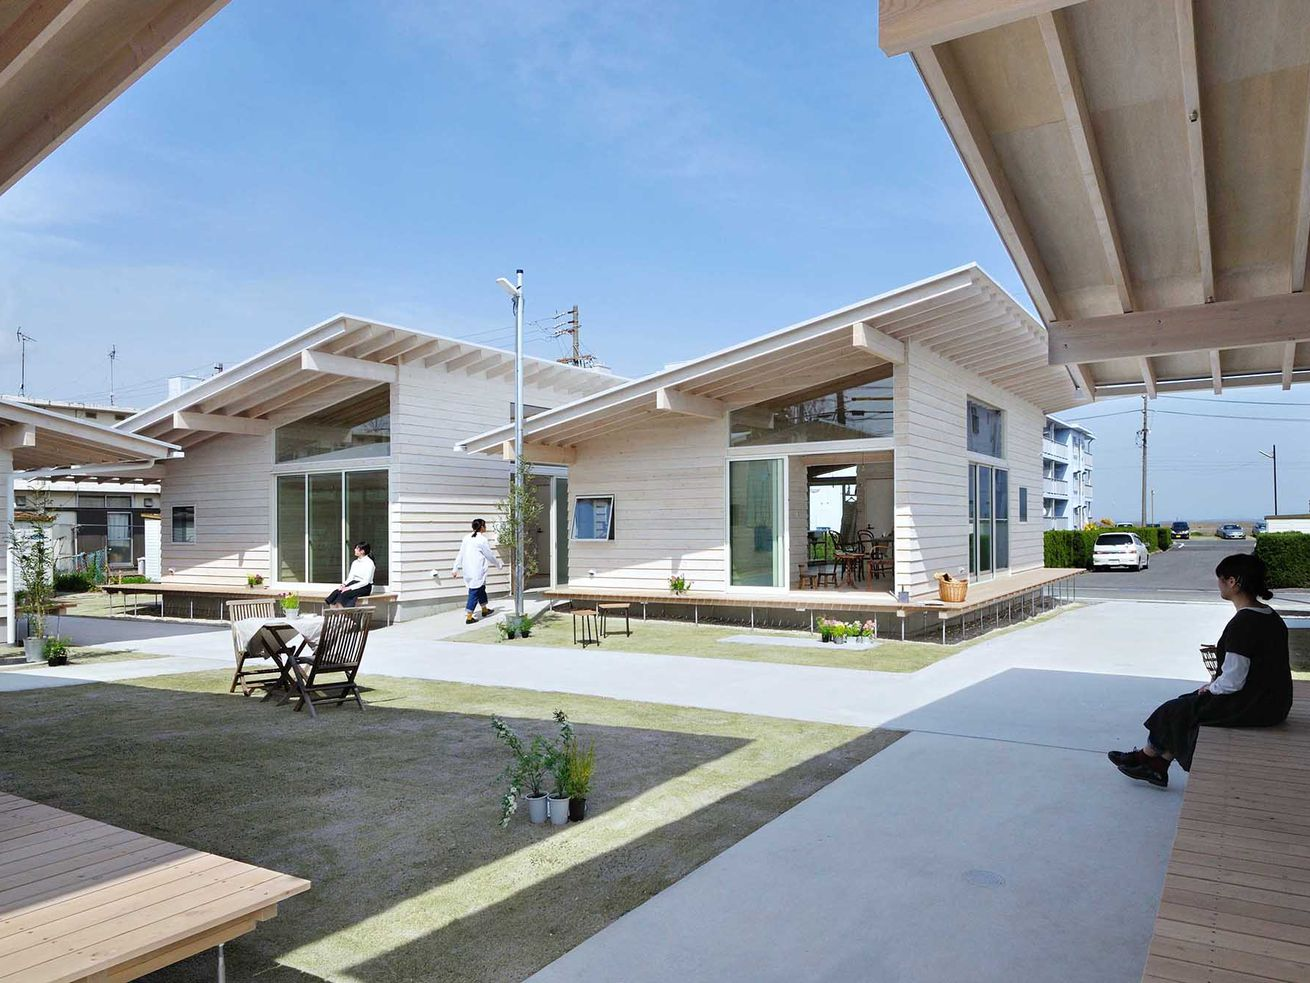 These Japanese homes were designed to encourage neighbor interaction